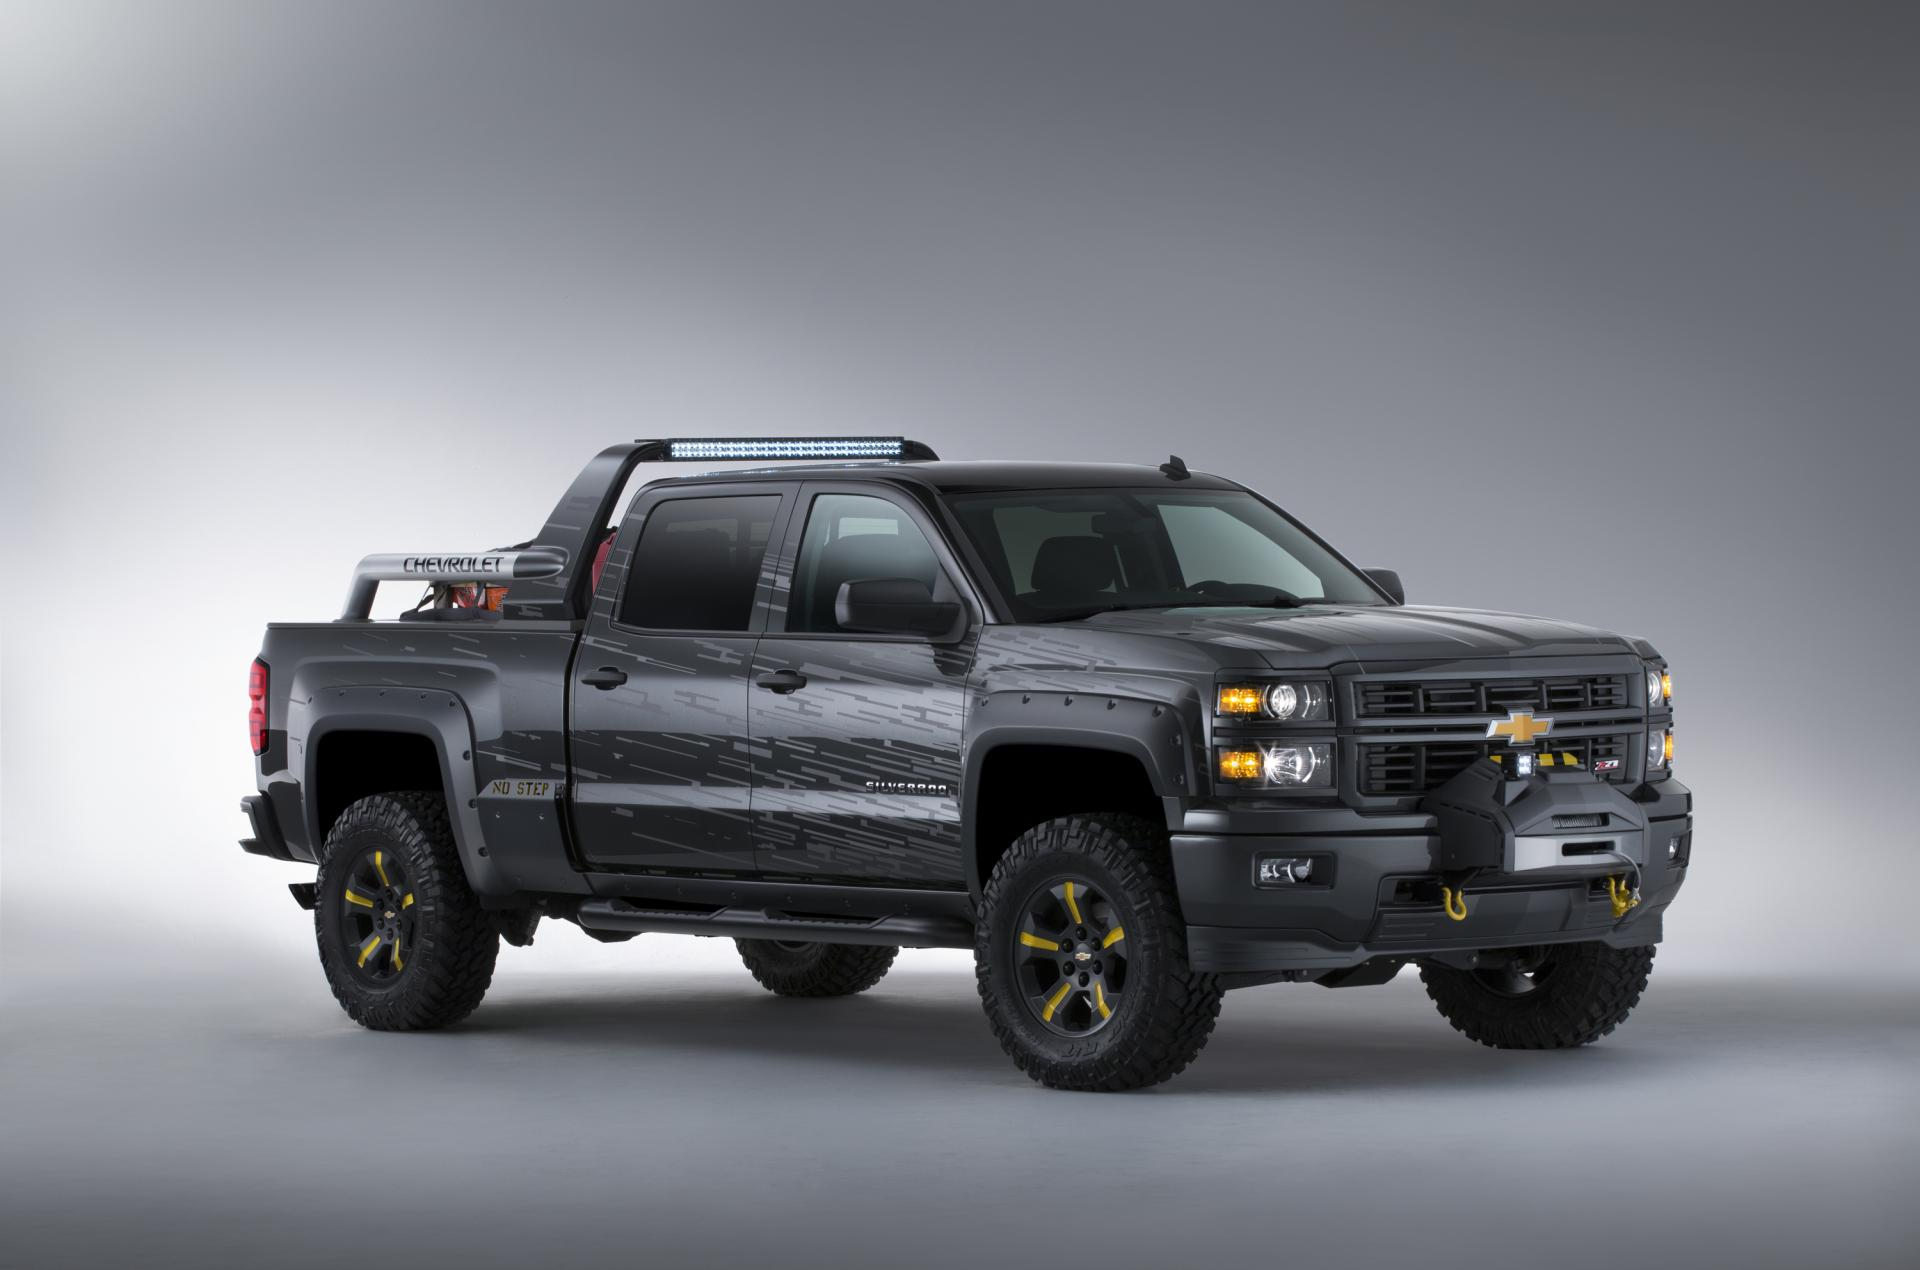 2014 chevrolet silverado black ops concept pictures news research pricing. Black Bedroom Furniture Sets. Home Design Ideas